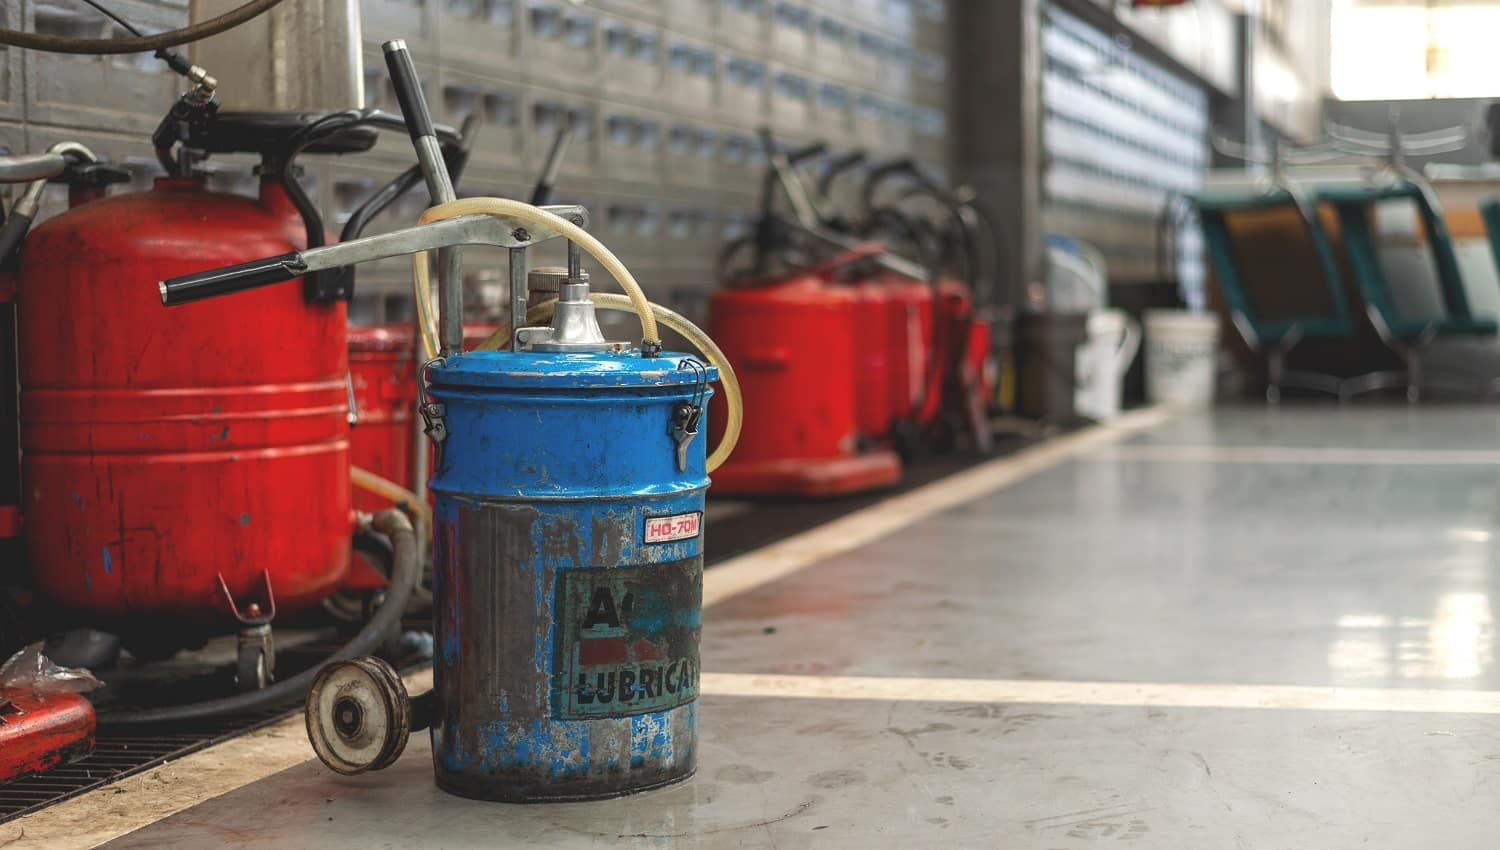 lubricating oils tank in the garage with soft-focus and over light in the background